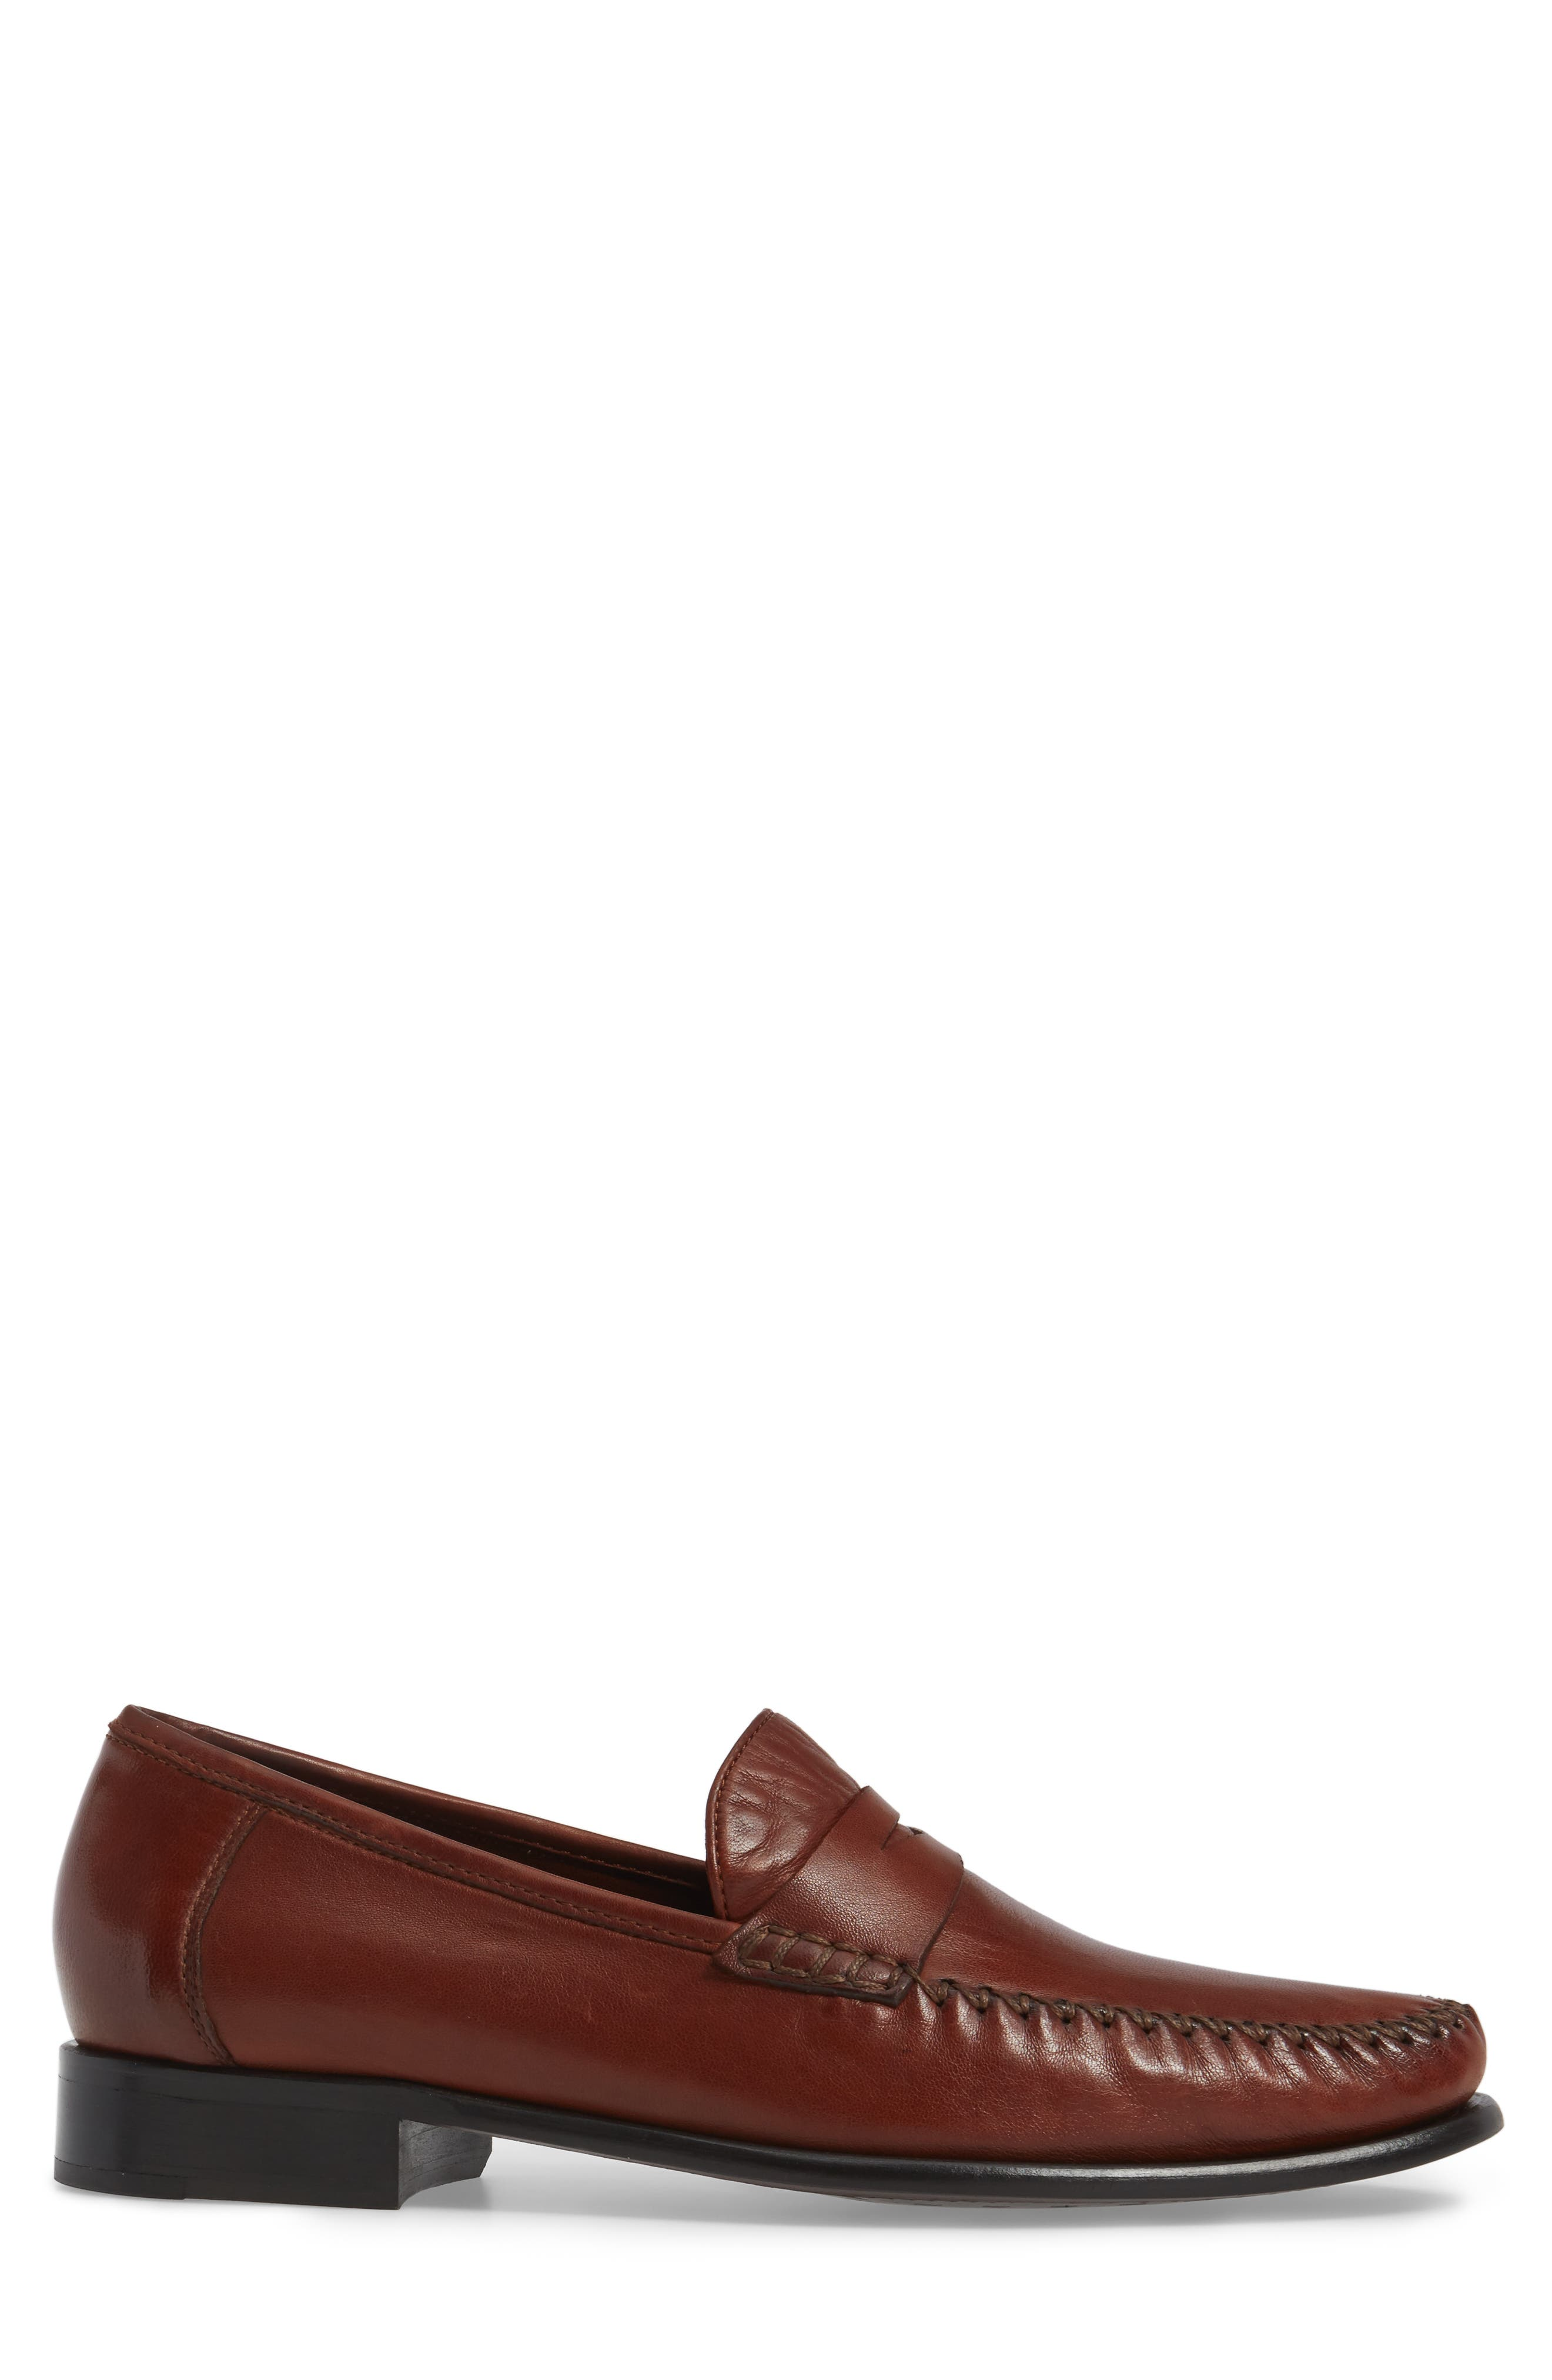 Penny Loafer,                             Alternate thumbnail 3, color,                             DARK LUGGAGE LEATHER